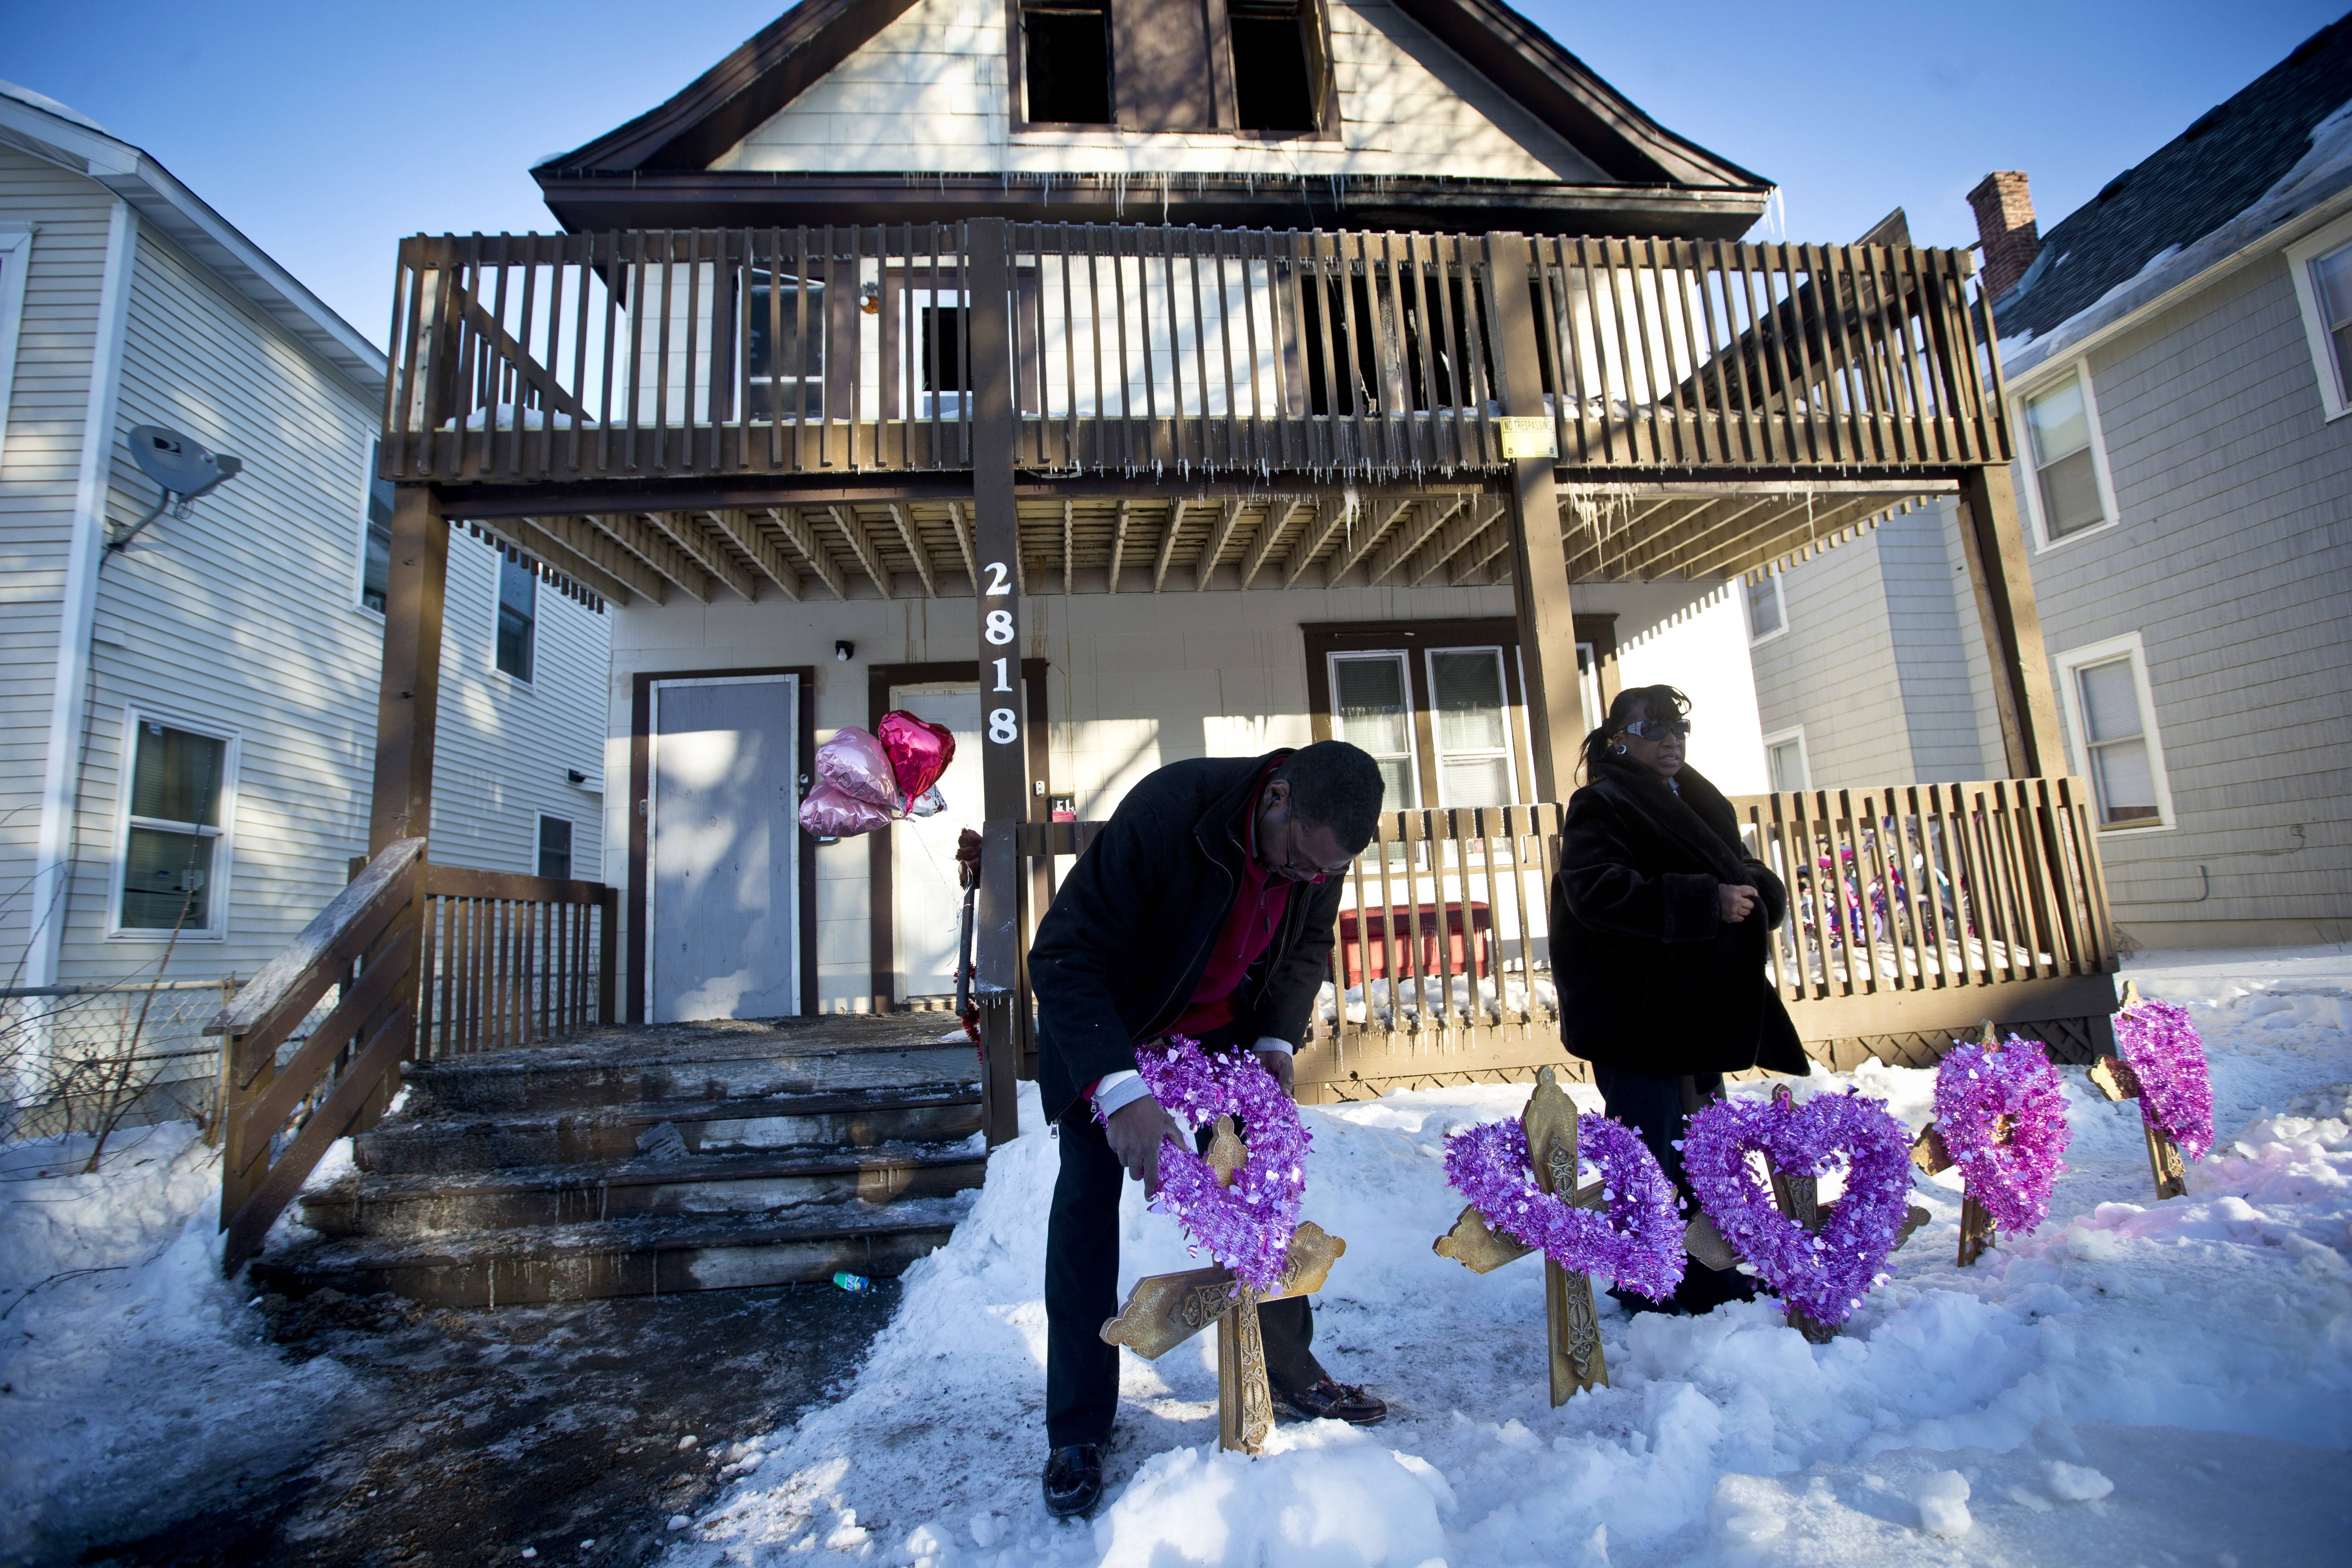 John Martin and Helen Williams put five crosses and wreaths in front of the home where people were killed in a house fire on Friday in Minneapolis. The fire killed five people, including at least three children, and injured several others, officials said.